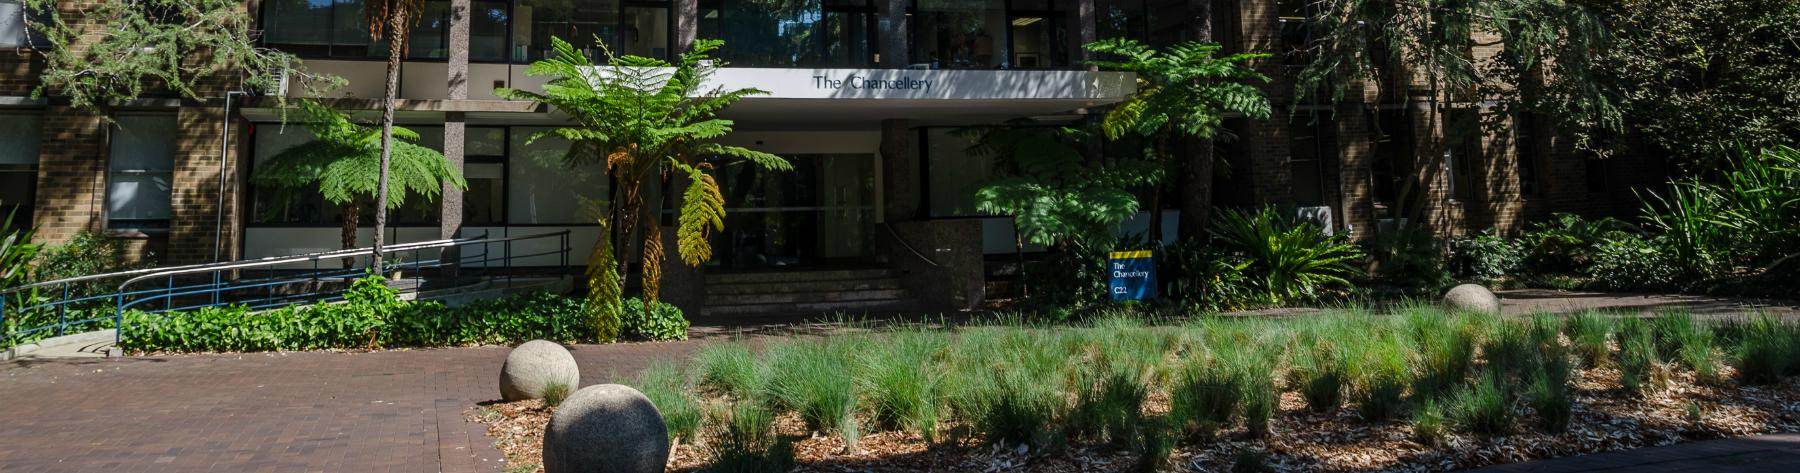 Home Online forms Online forms UNSW